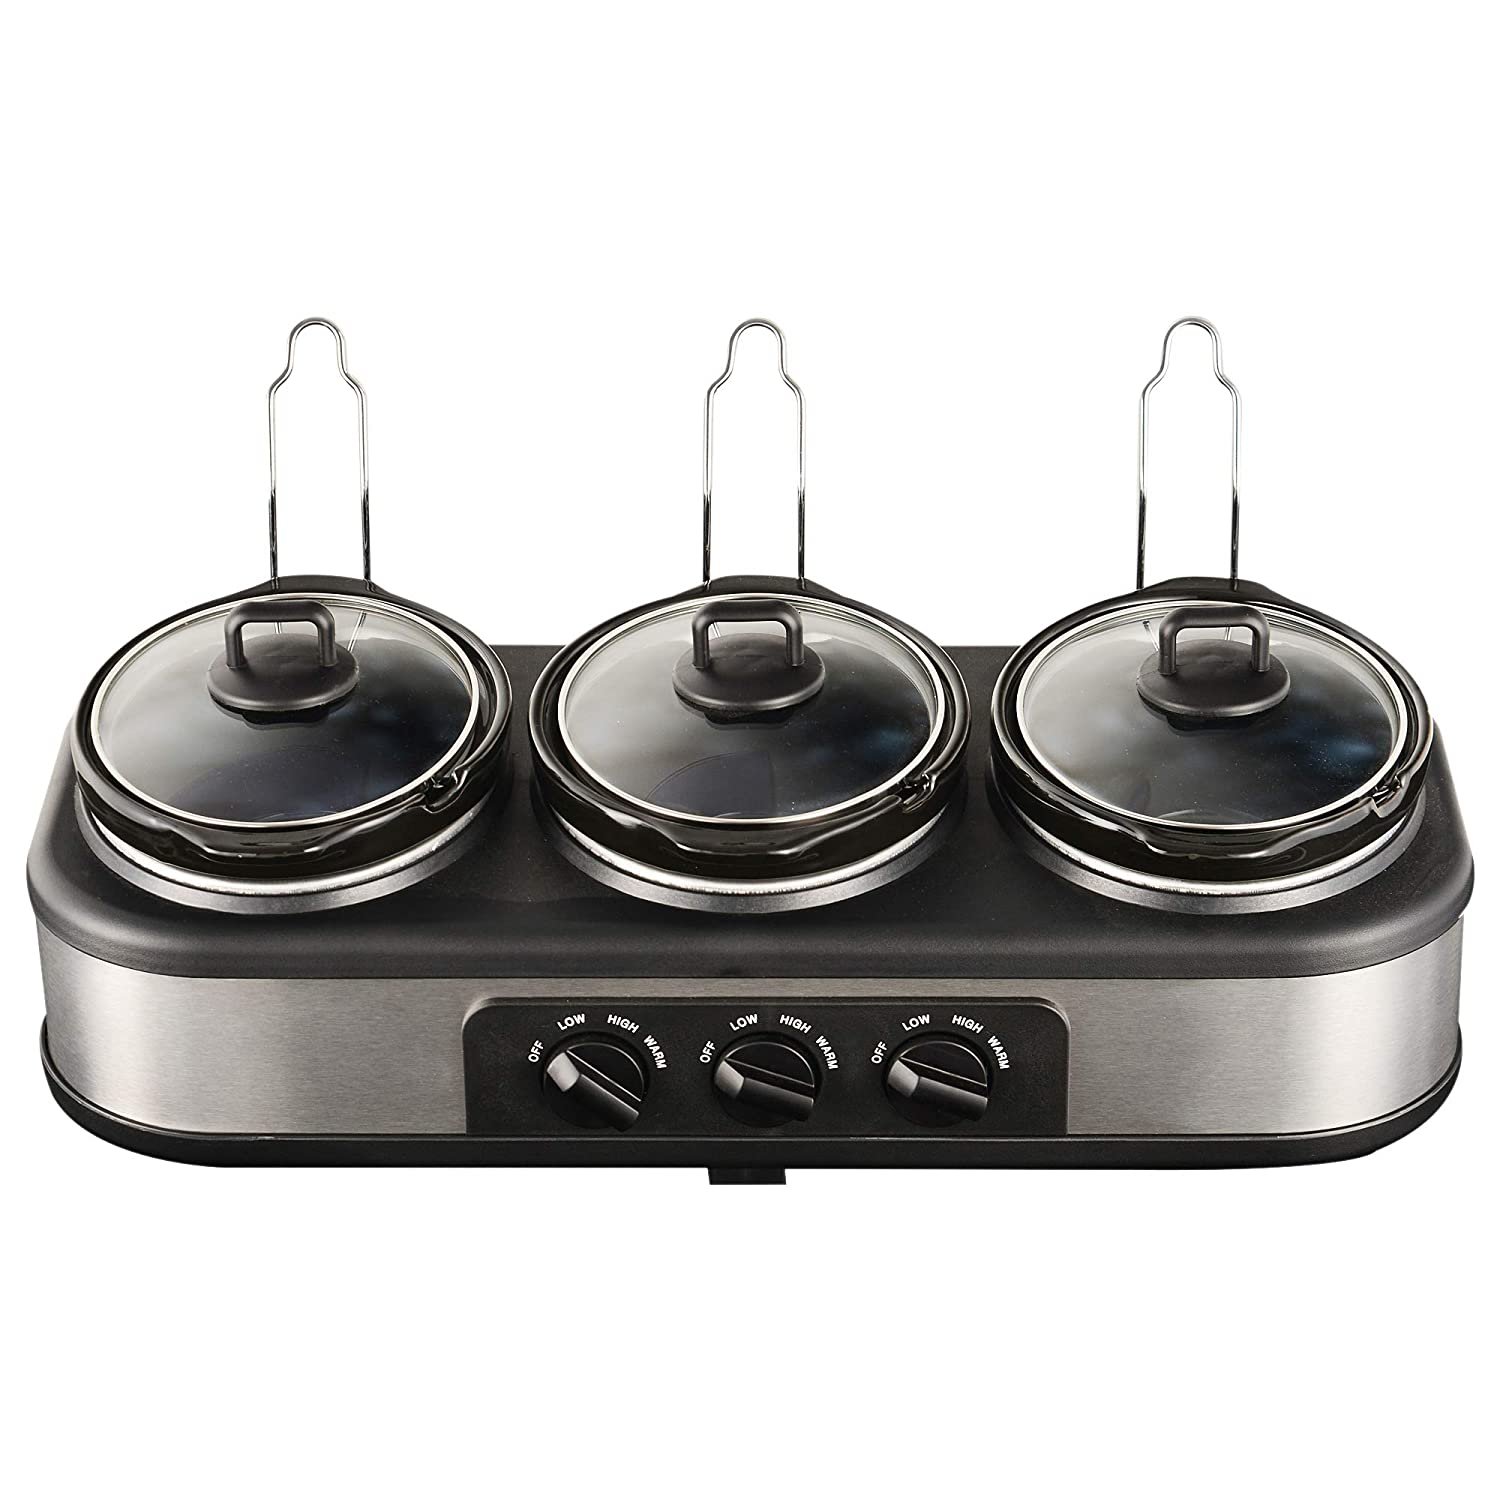 Sunvivi Triple Slow Cooker Buffet Server, 3×1.5 QT Slow Cookers Buffet Server with Non-Skid Feet, 3 Pots Food Warmer Adjustable Temp Lid Rests Stainless Steel for Parties Holidays Families